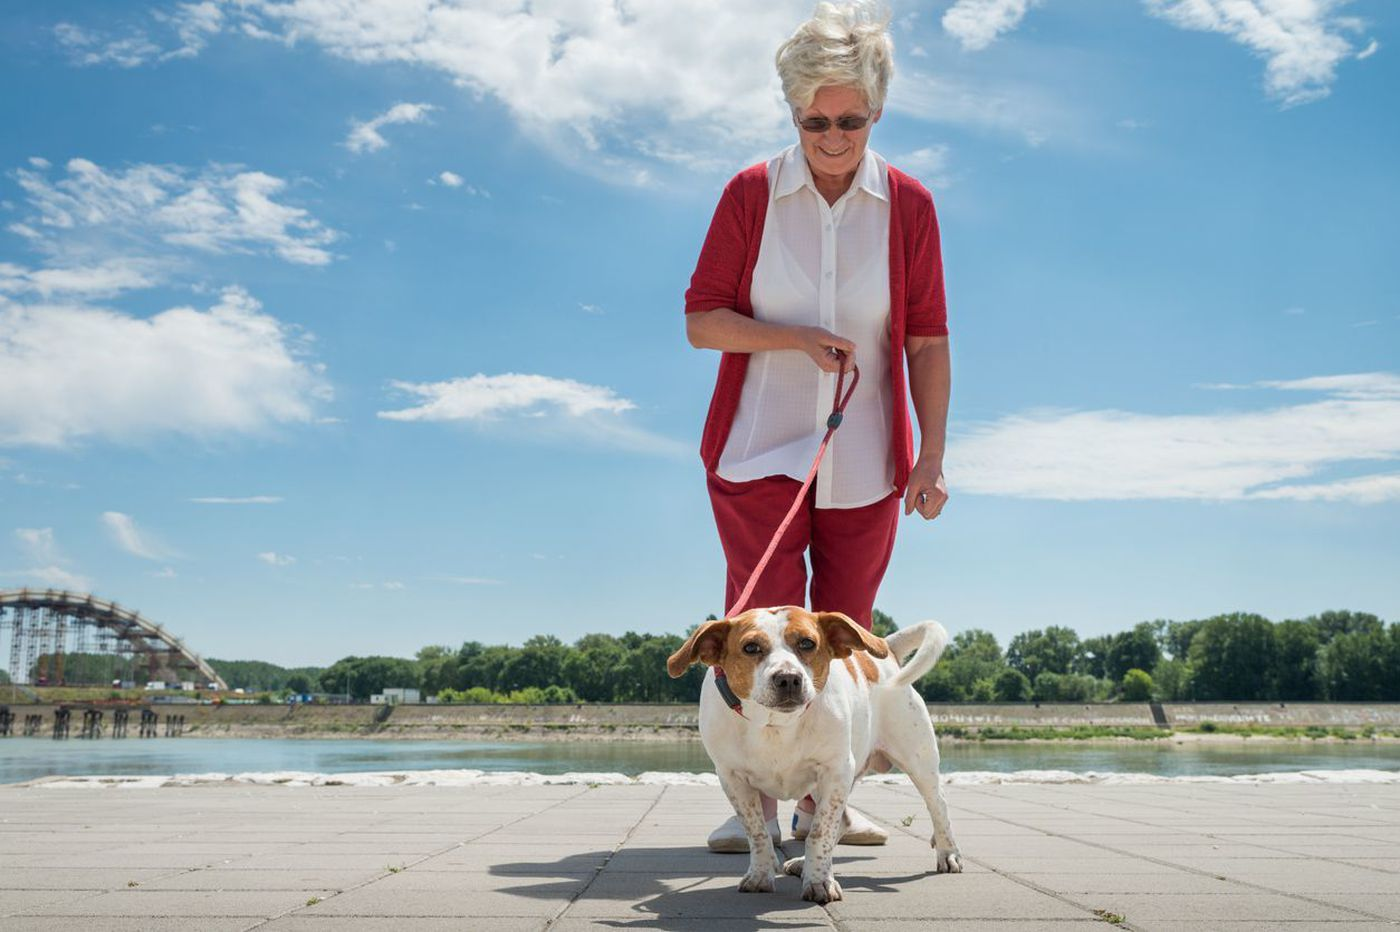 Broken bones from falls on the rise among older dog walkers